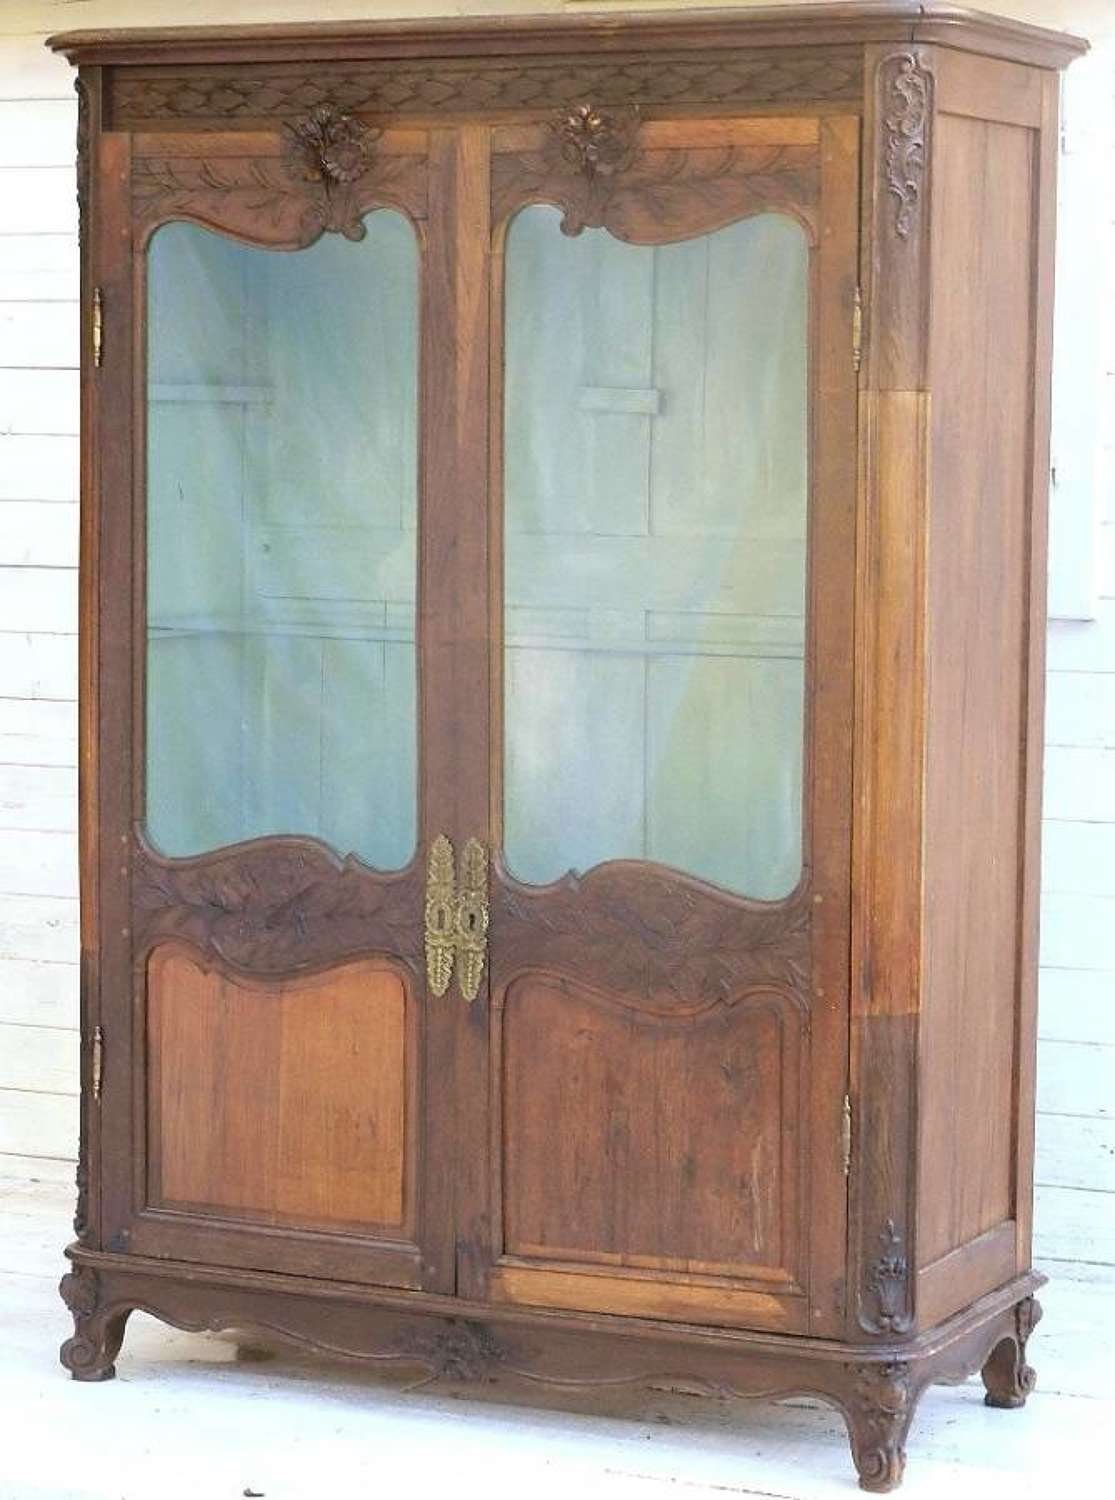 Early C19 French Provincial Vitrine carved oak Louis Bookcase Display Cupboard Armoire